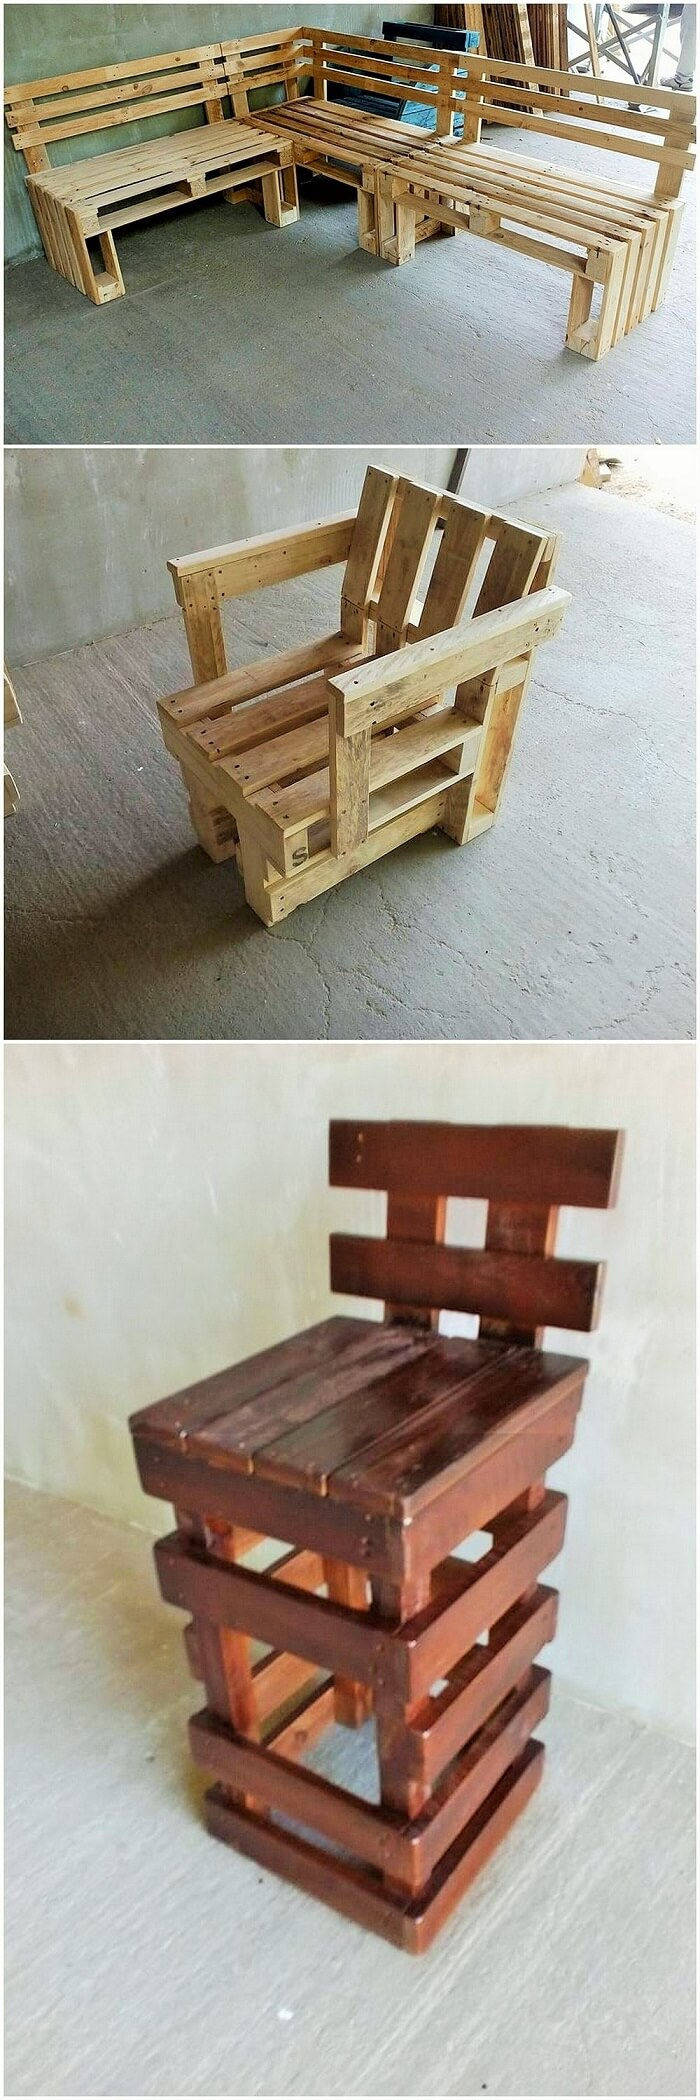 DIY WOOD PALLETS MADE TERRACE PROJECT (15)